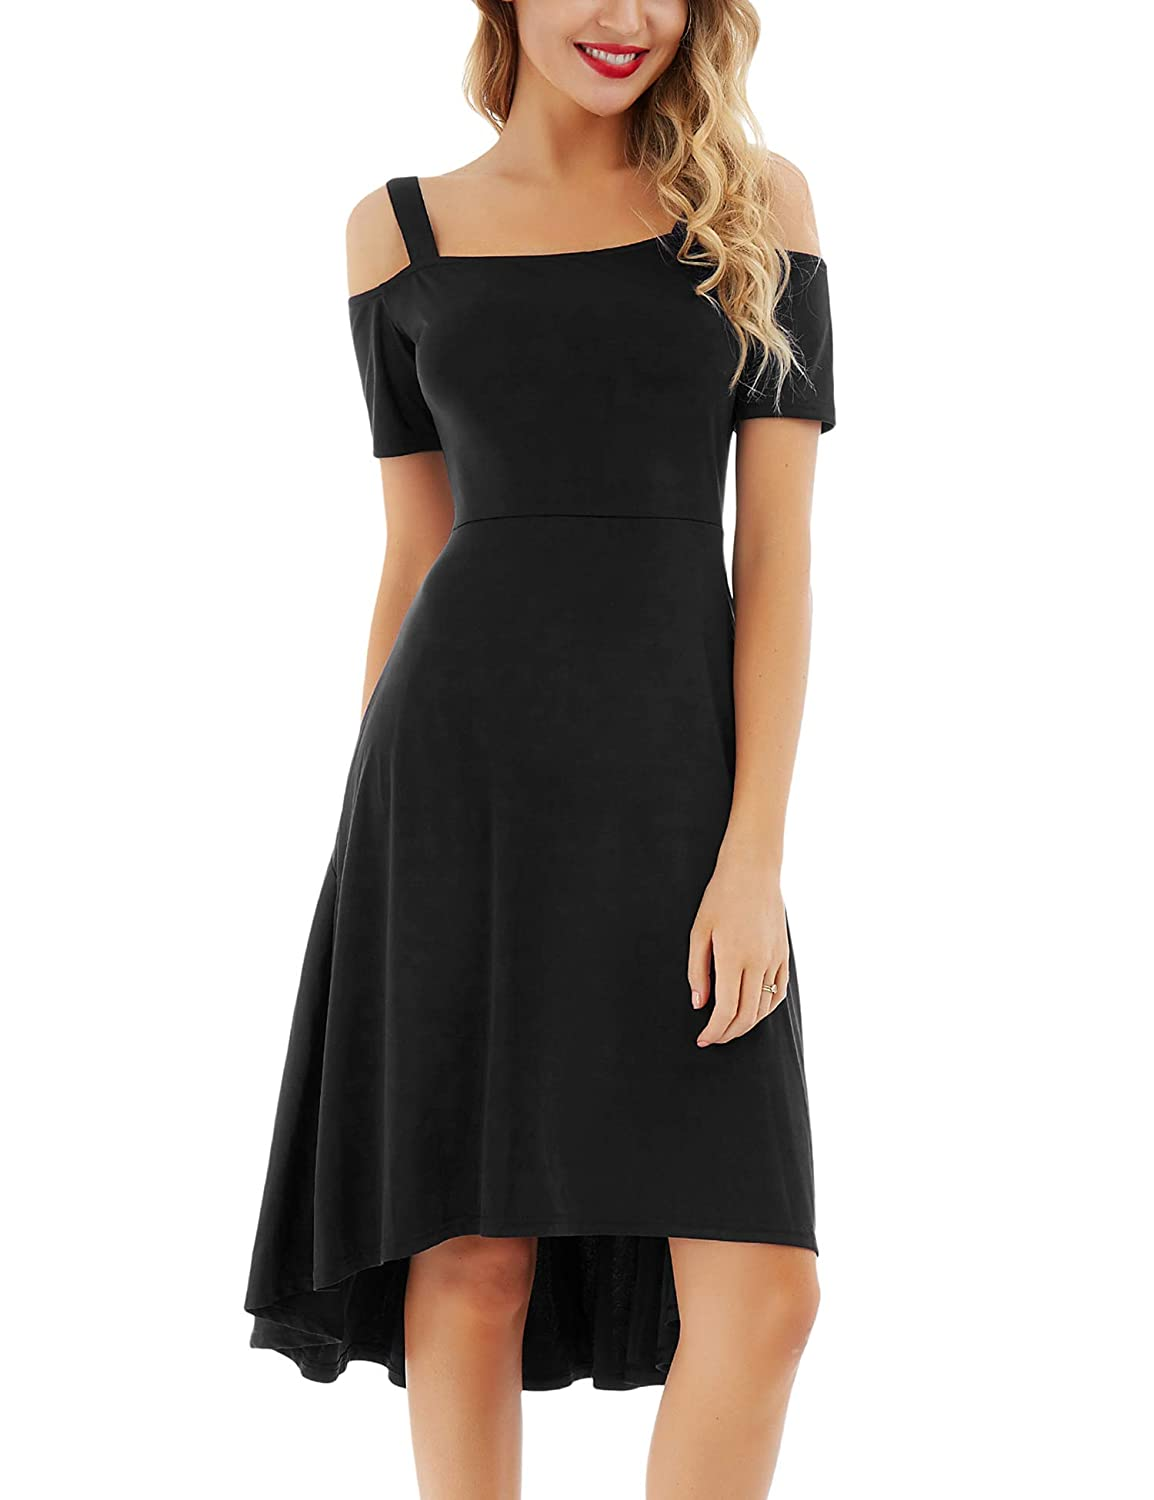 7a36382b1b Gorgeous women skater dress features cold shoulder neckline, high low  asymmetrical hem, elasticized trim, A-line and casual midi dresses with  short sleeves